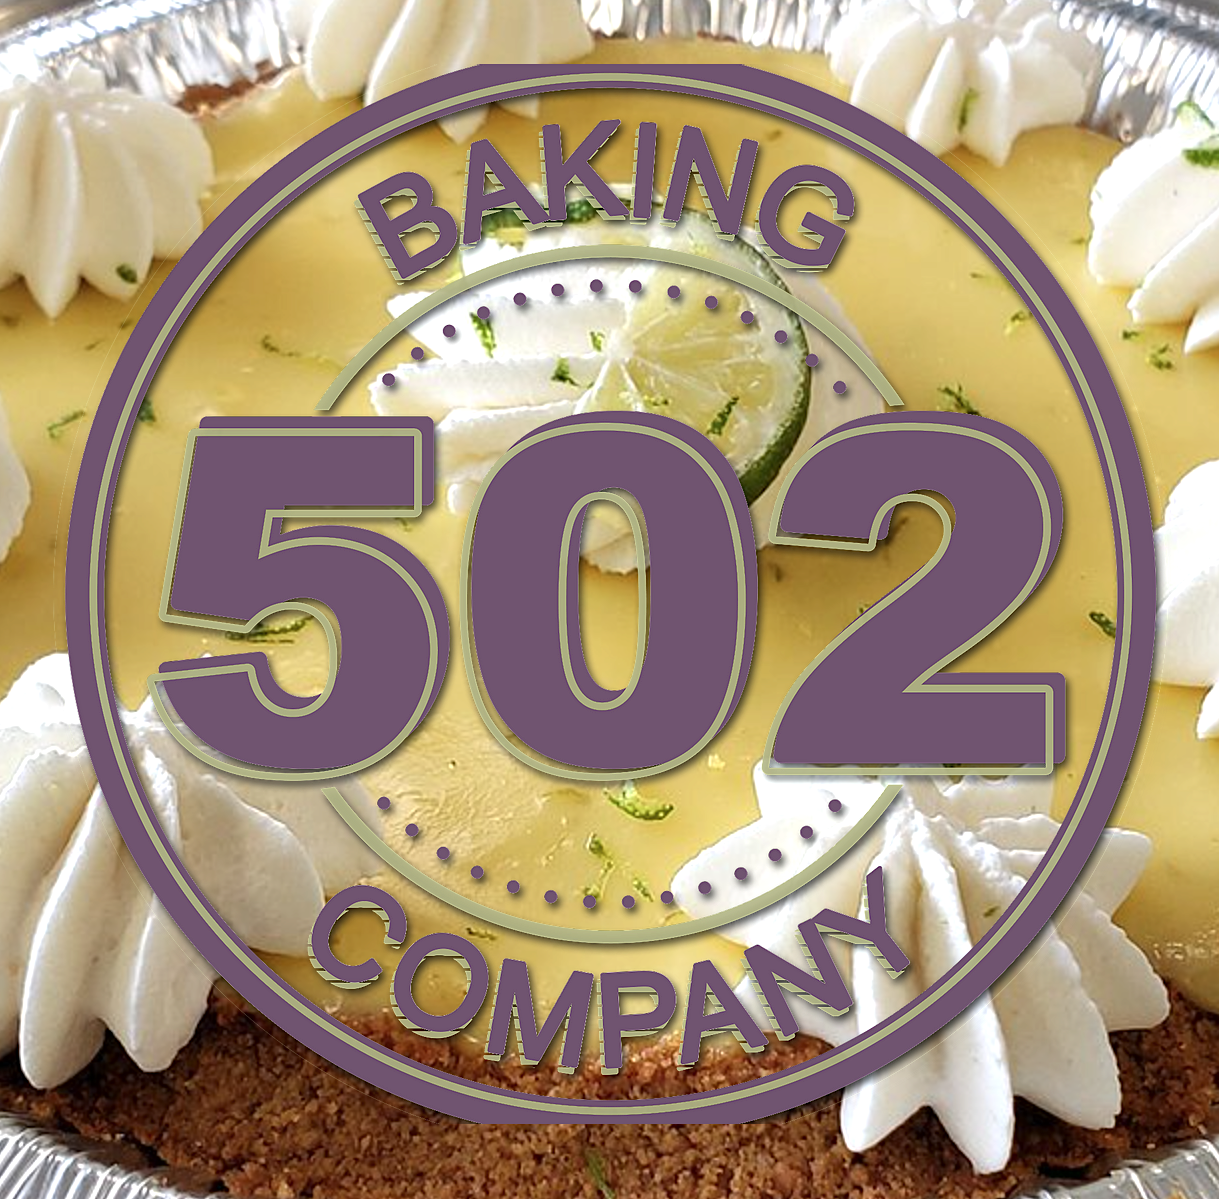 Thanksgiving Baked Goods Pre-Order (Ends on 11/14/20): 502 Baking Company - Pies (VG, Local NJ)